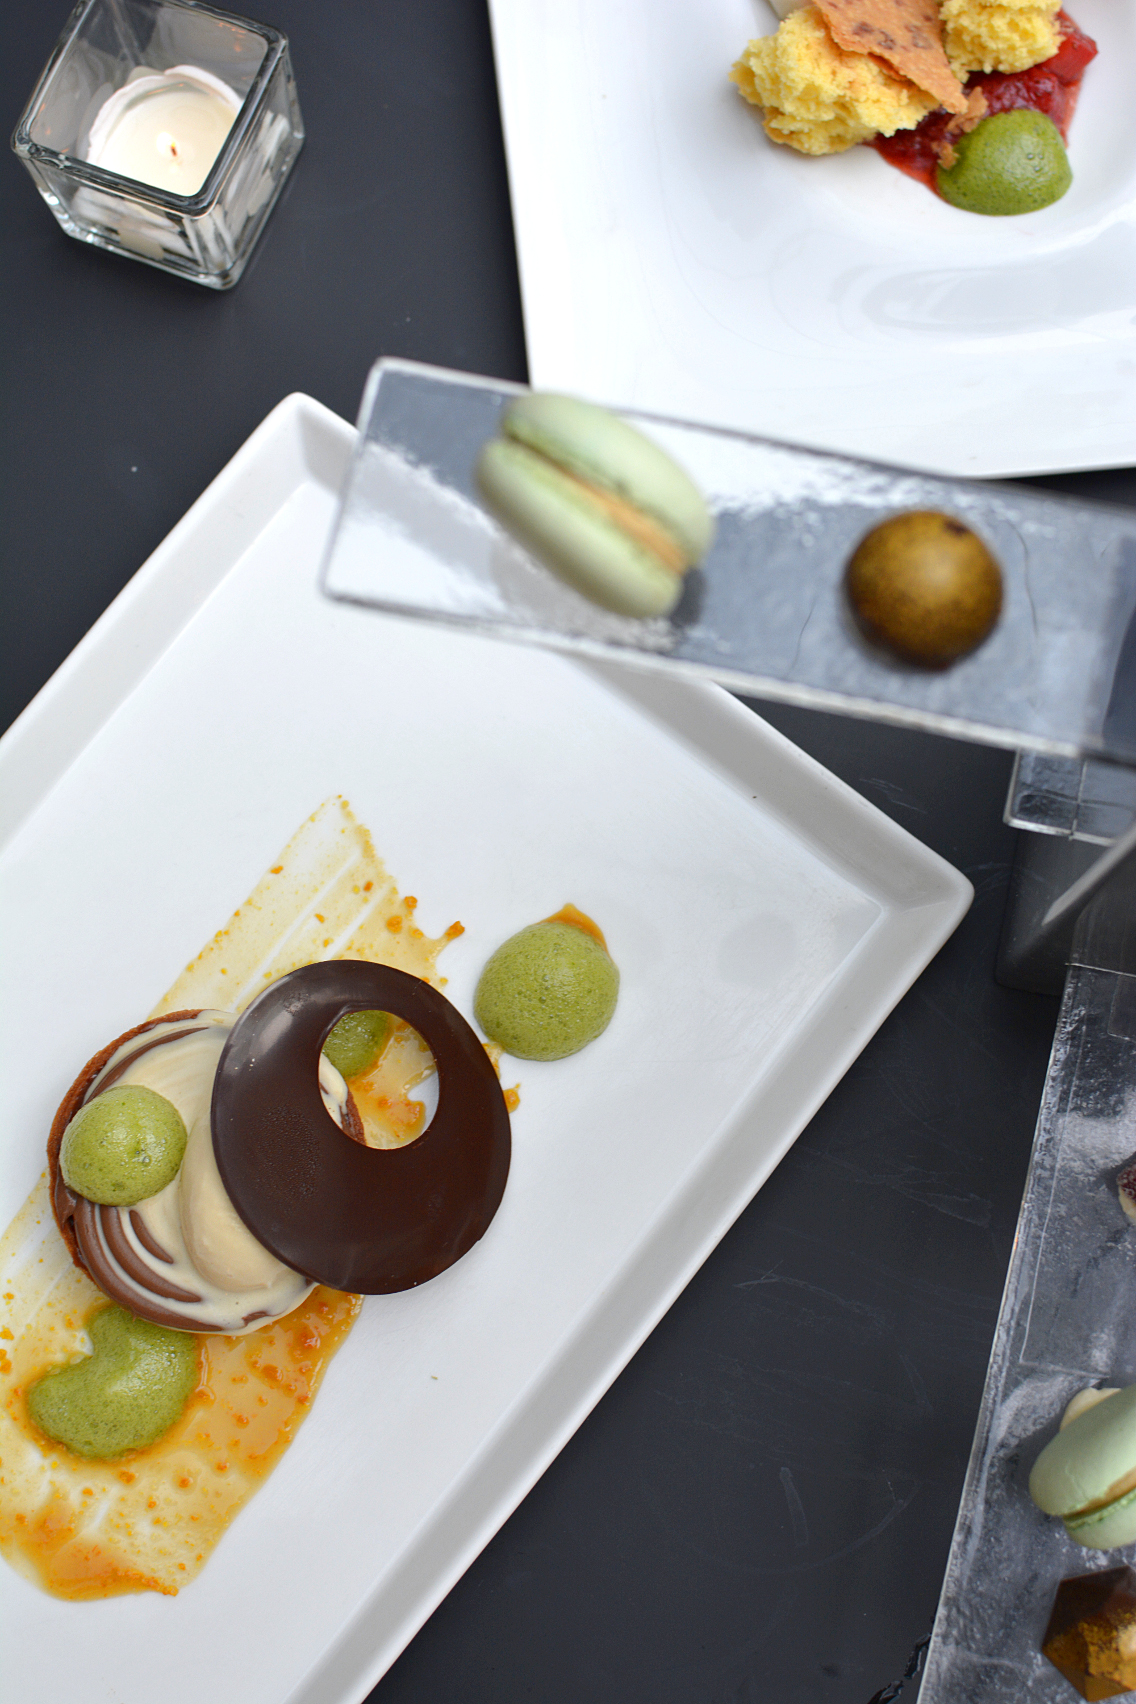 Sofitel Chicago Mignardises macarons, pate fruits, molded chocolates 5